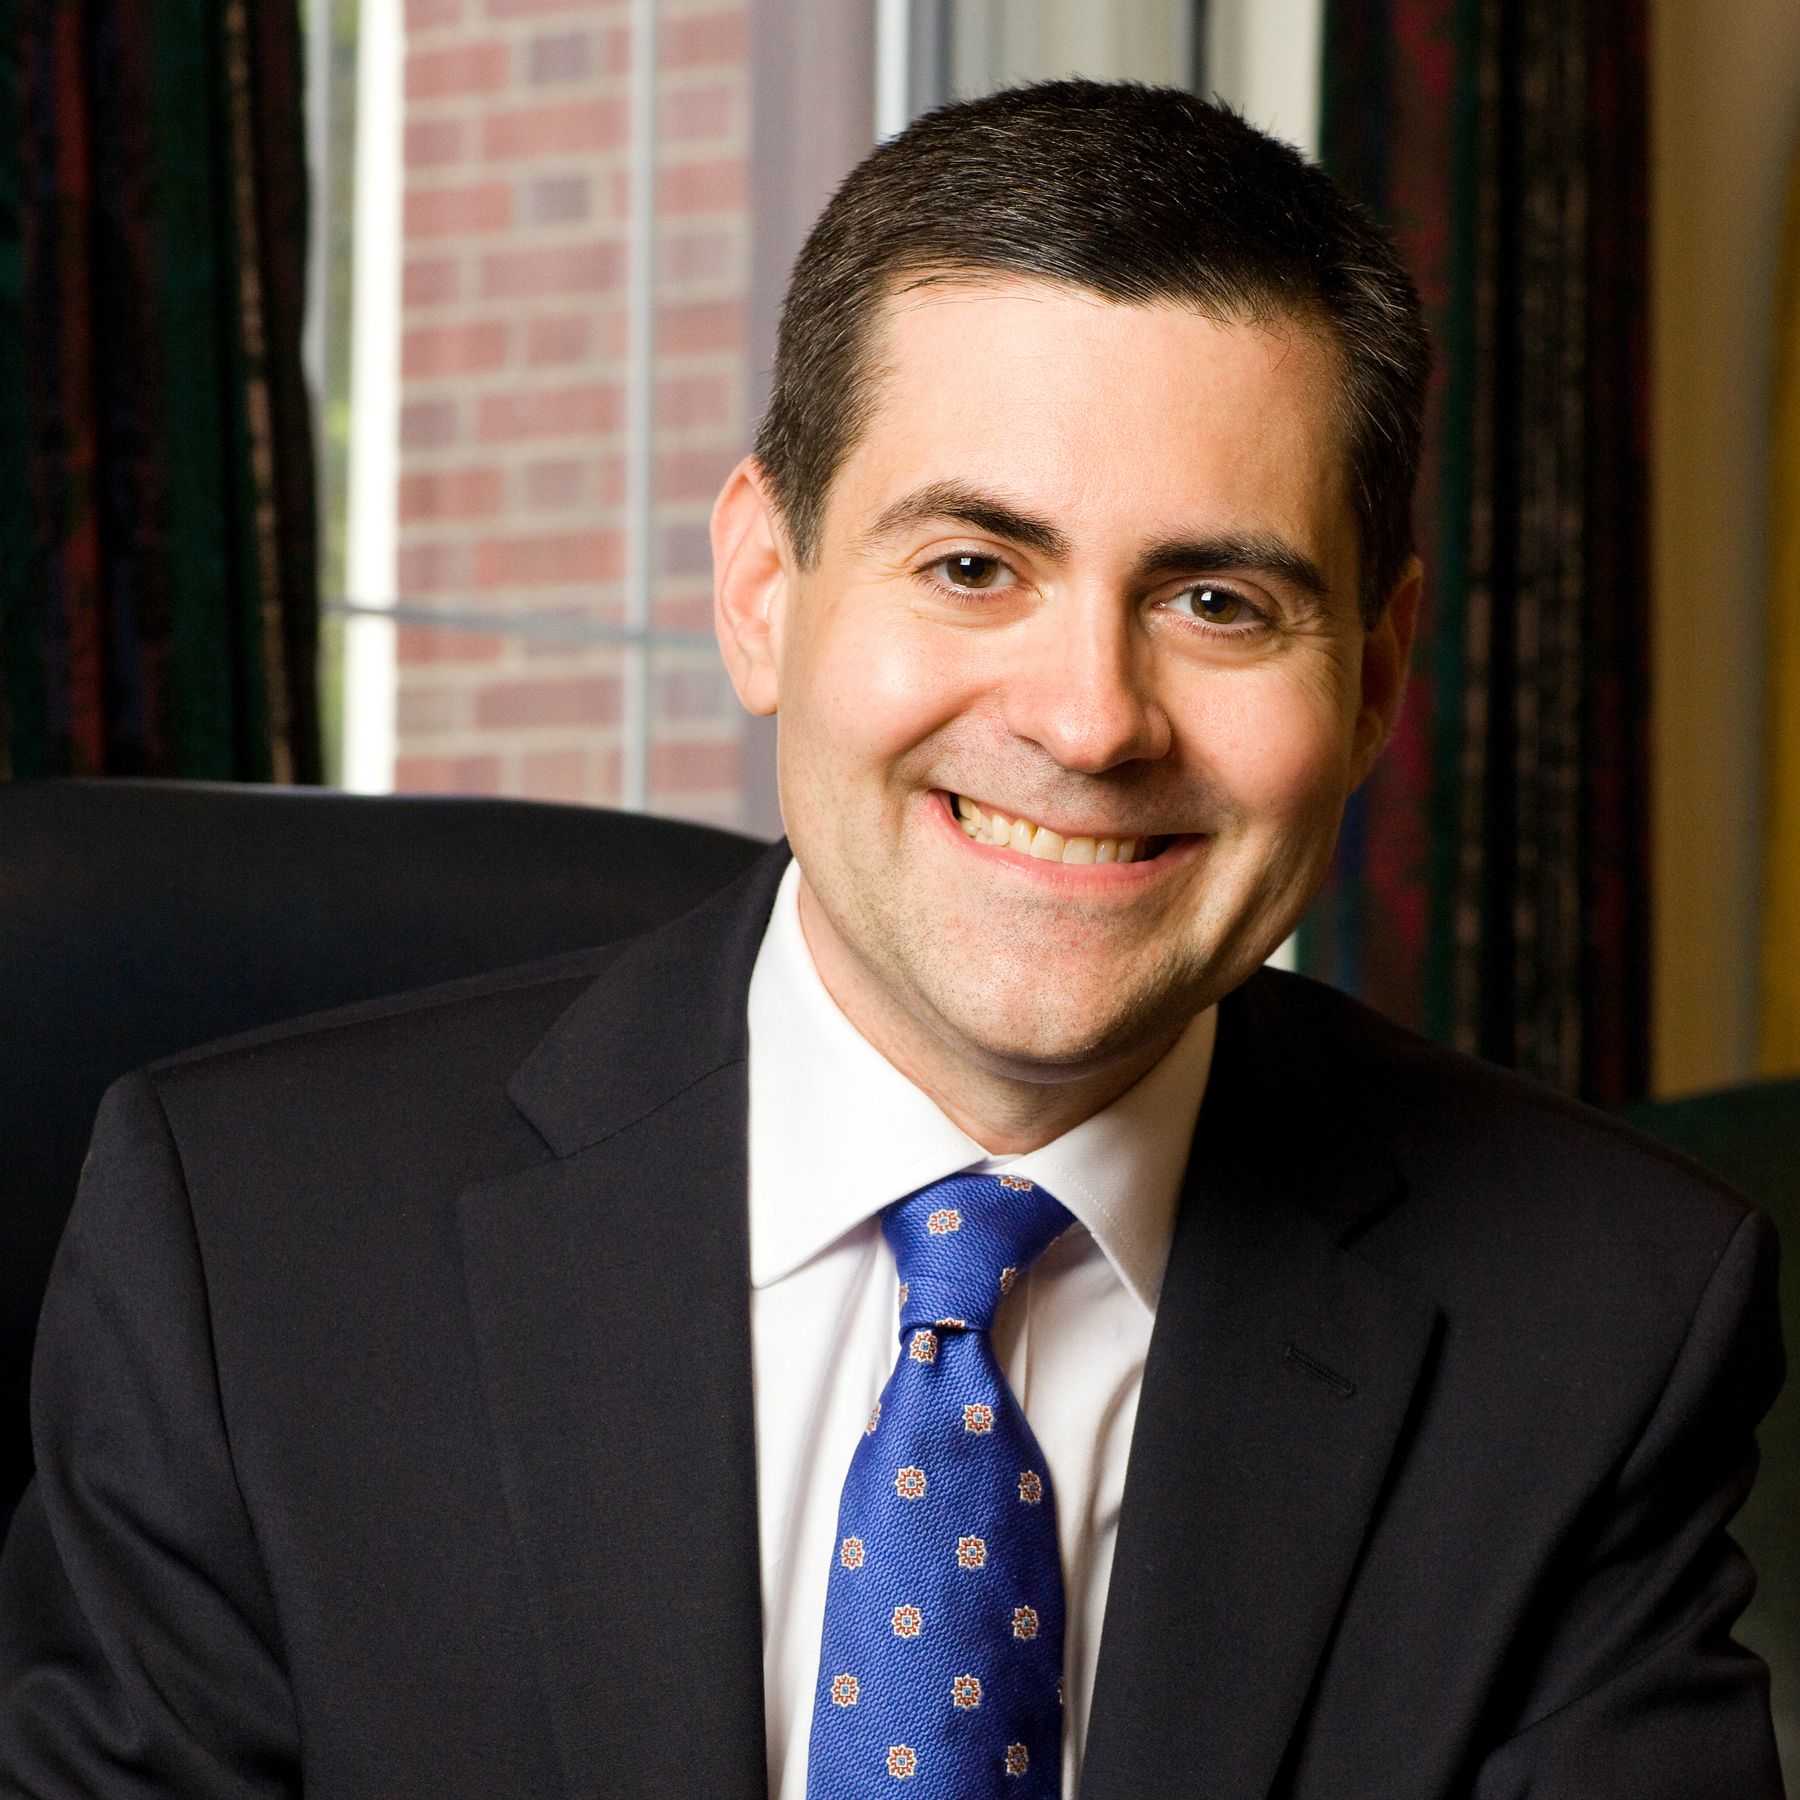 lit desiring god russell moore president ethics and religious liberty commission